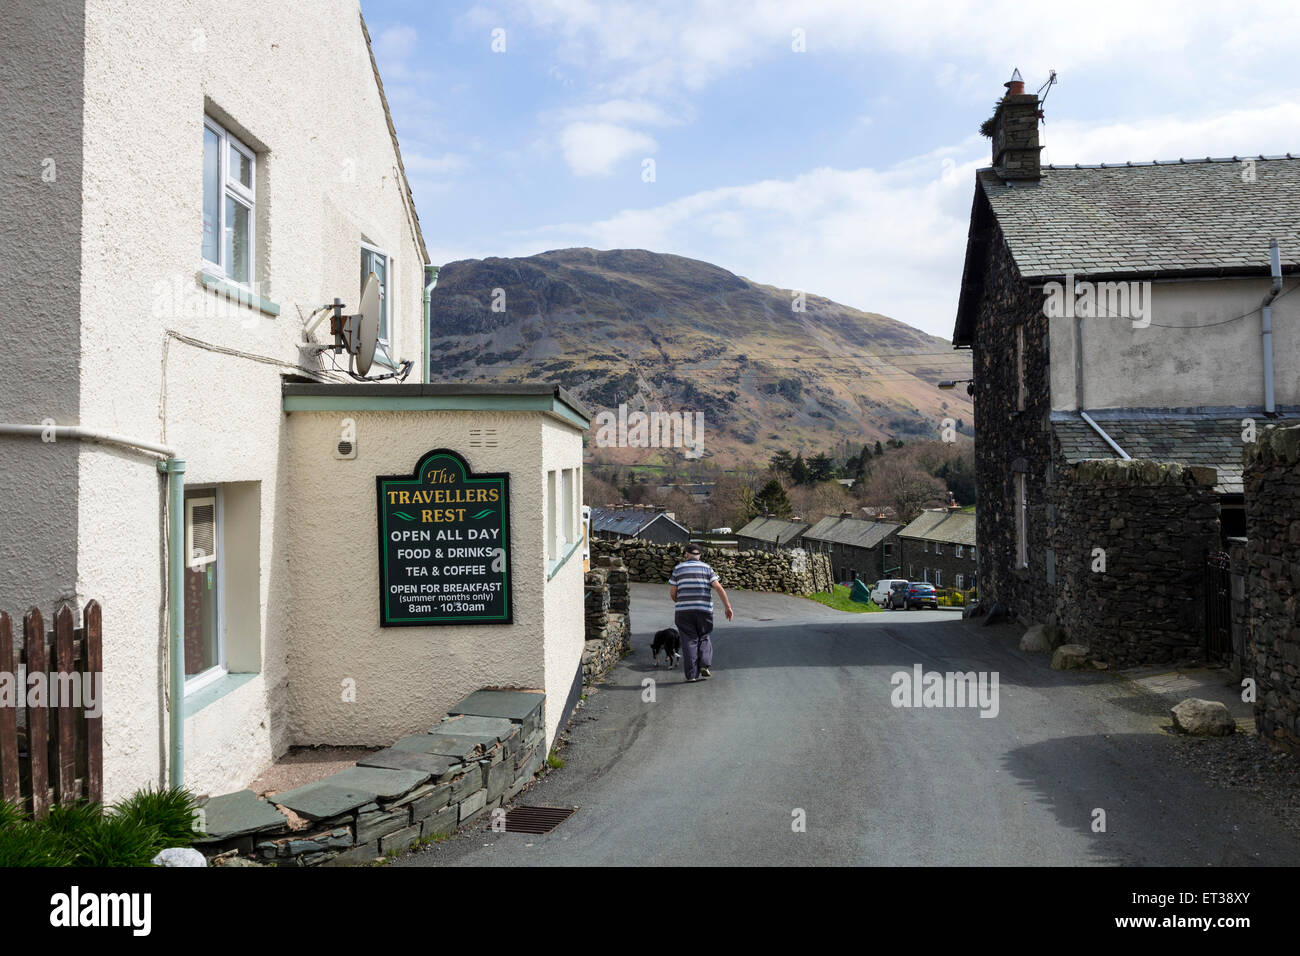 The Travellers Rest in Glenridding Lake District Cumbria UK Stock Photo